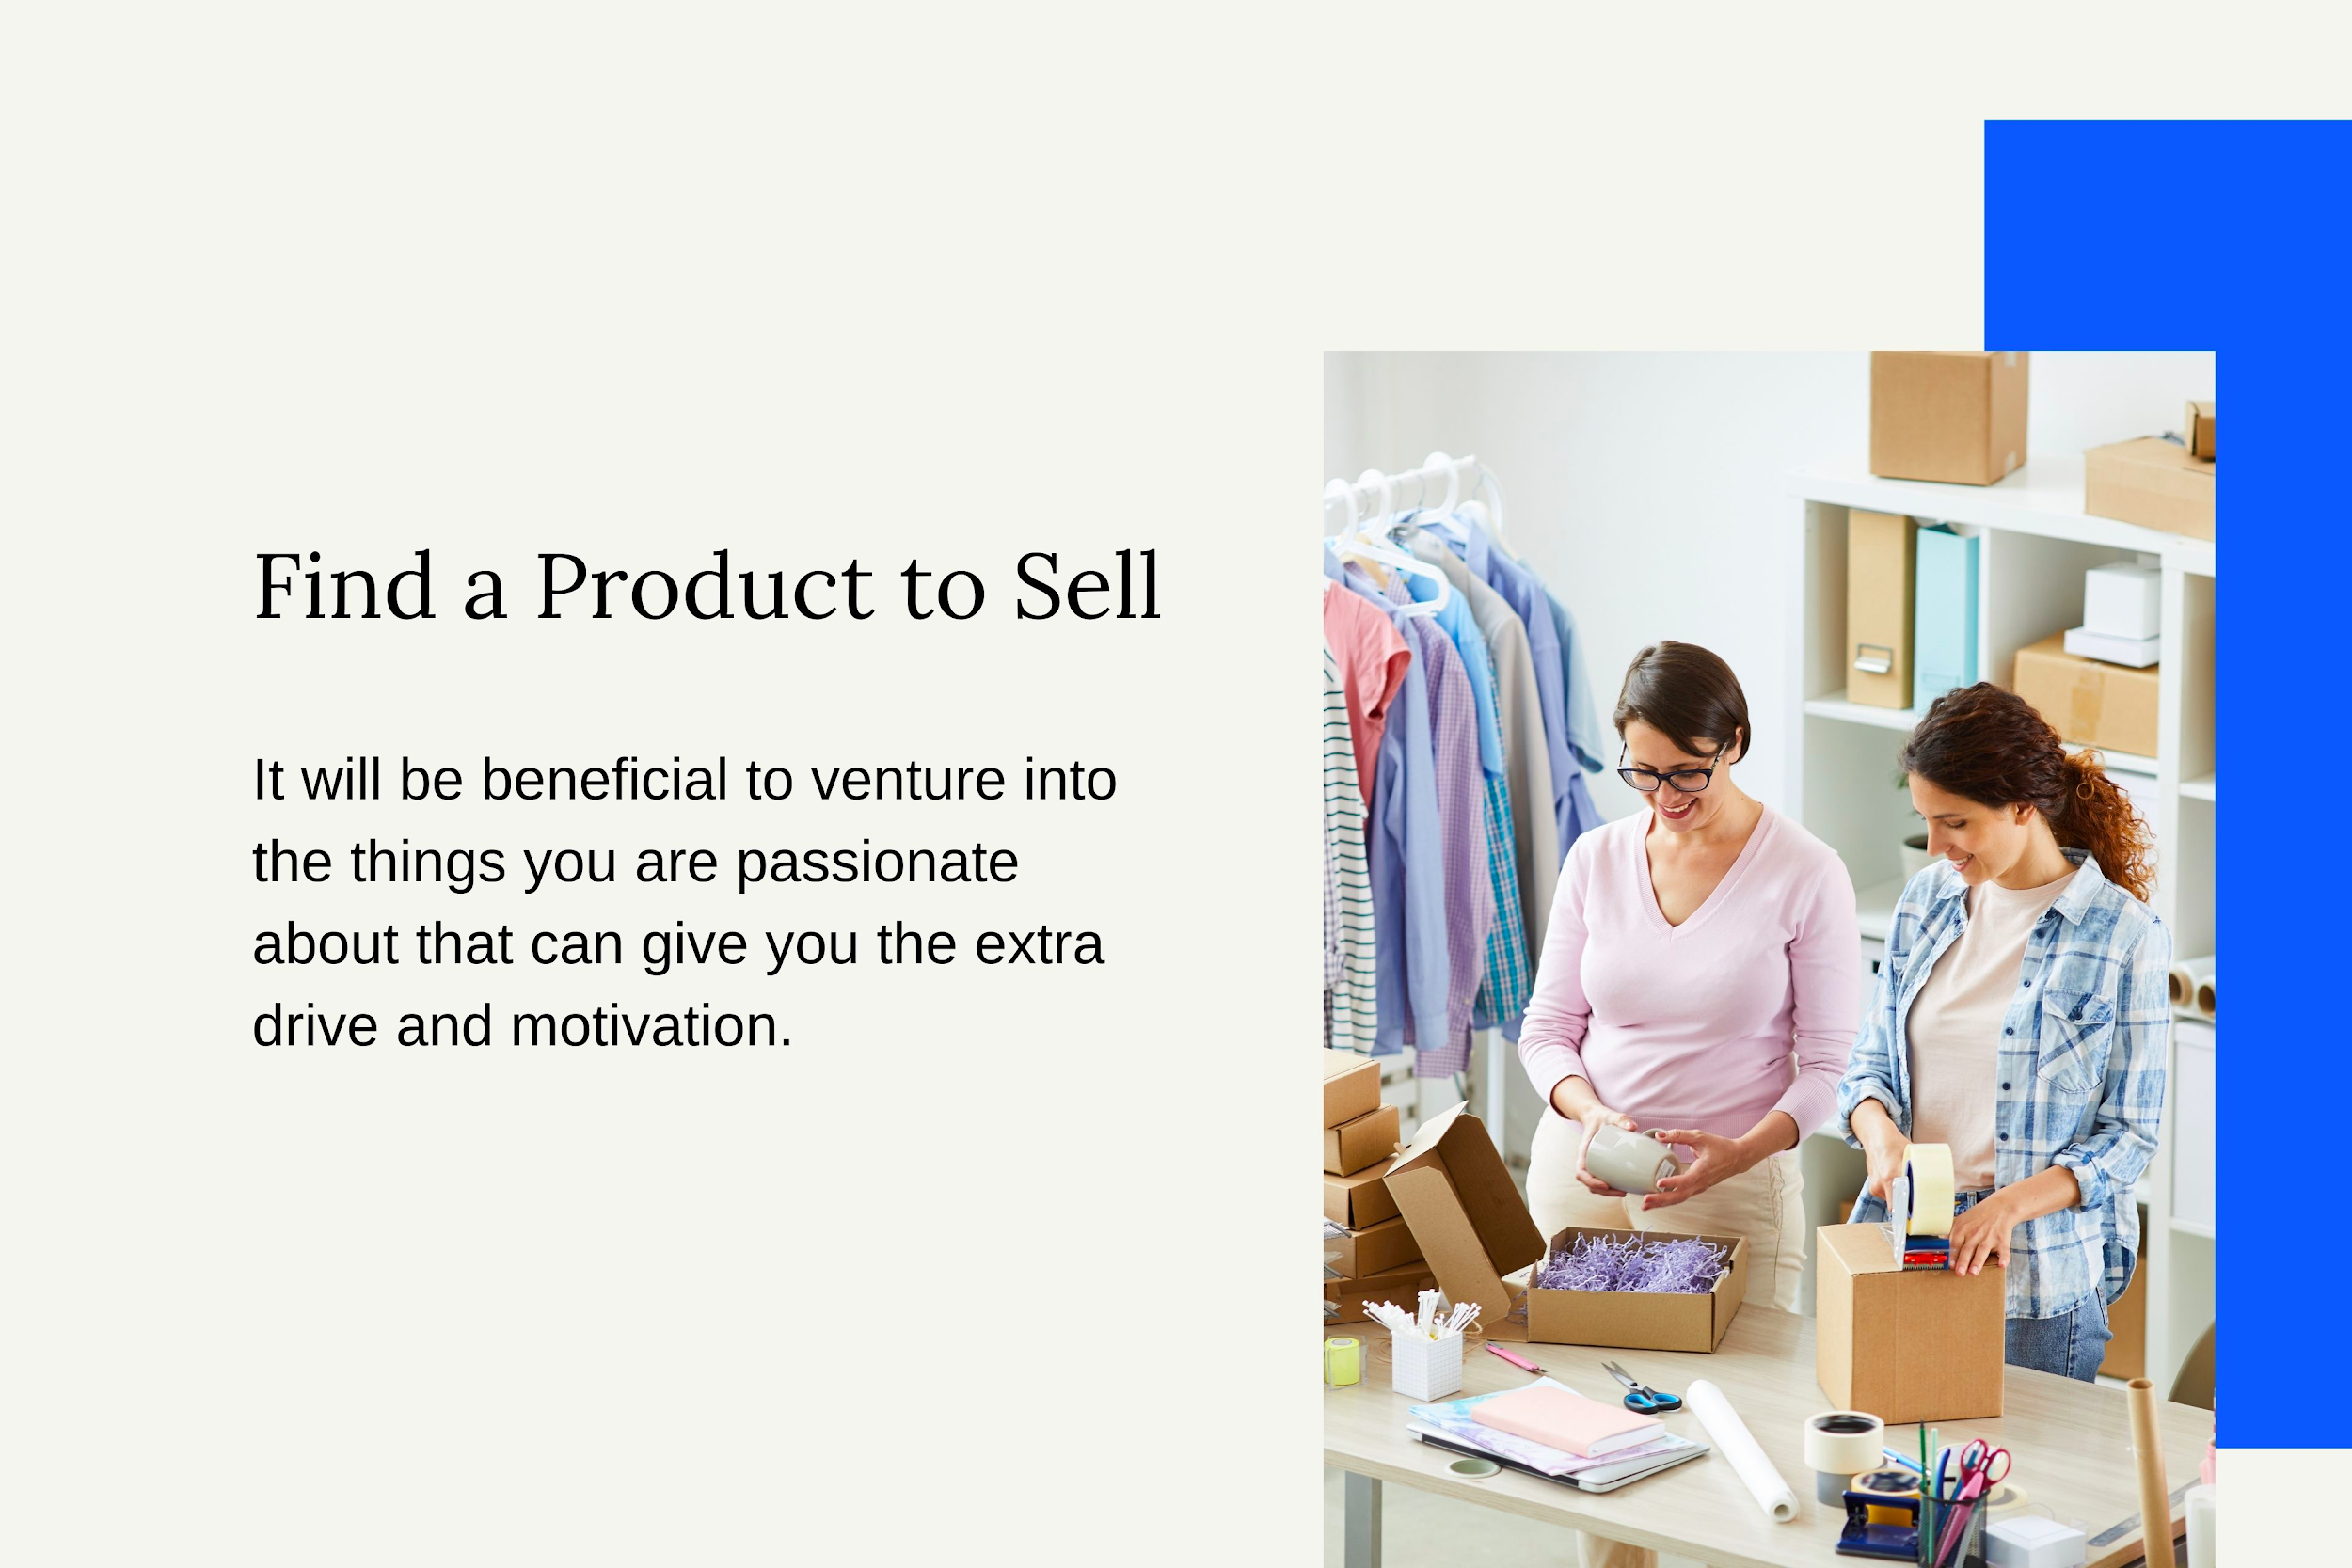 Find a Product to Sell